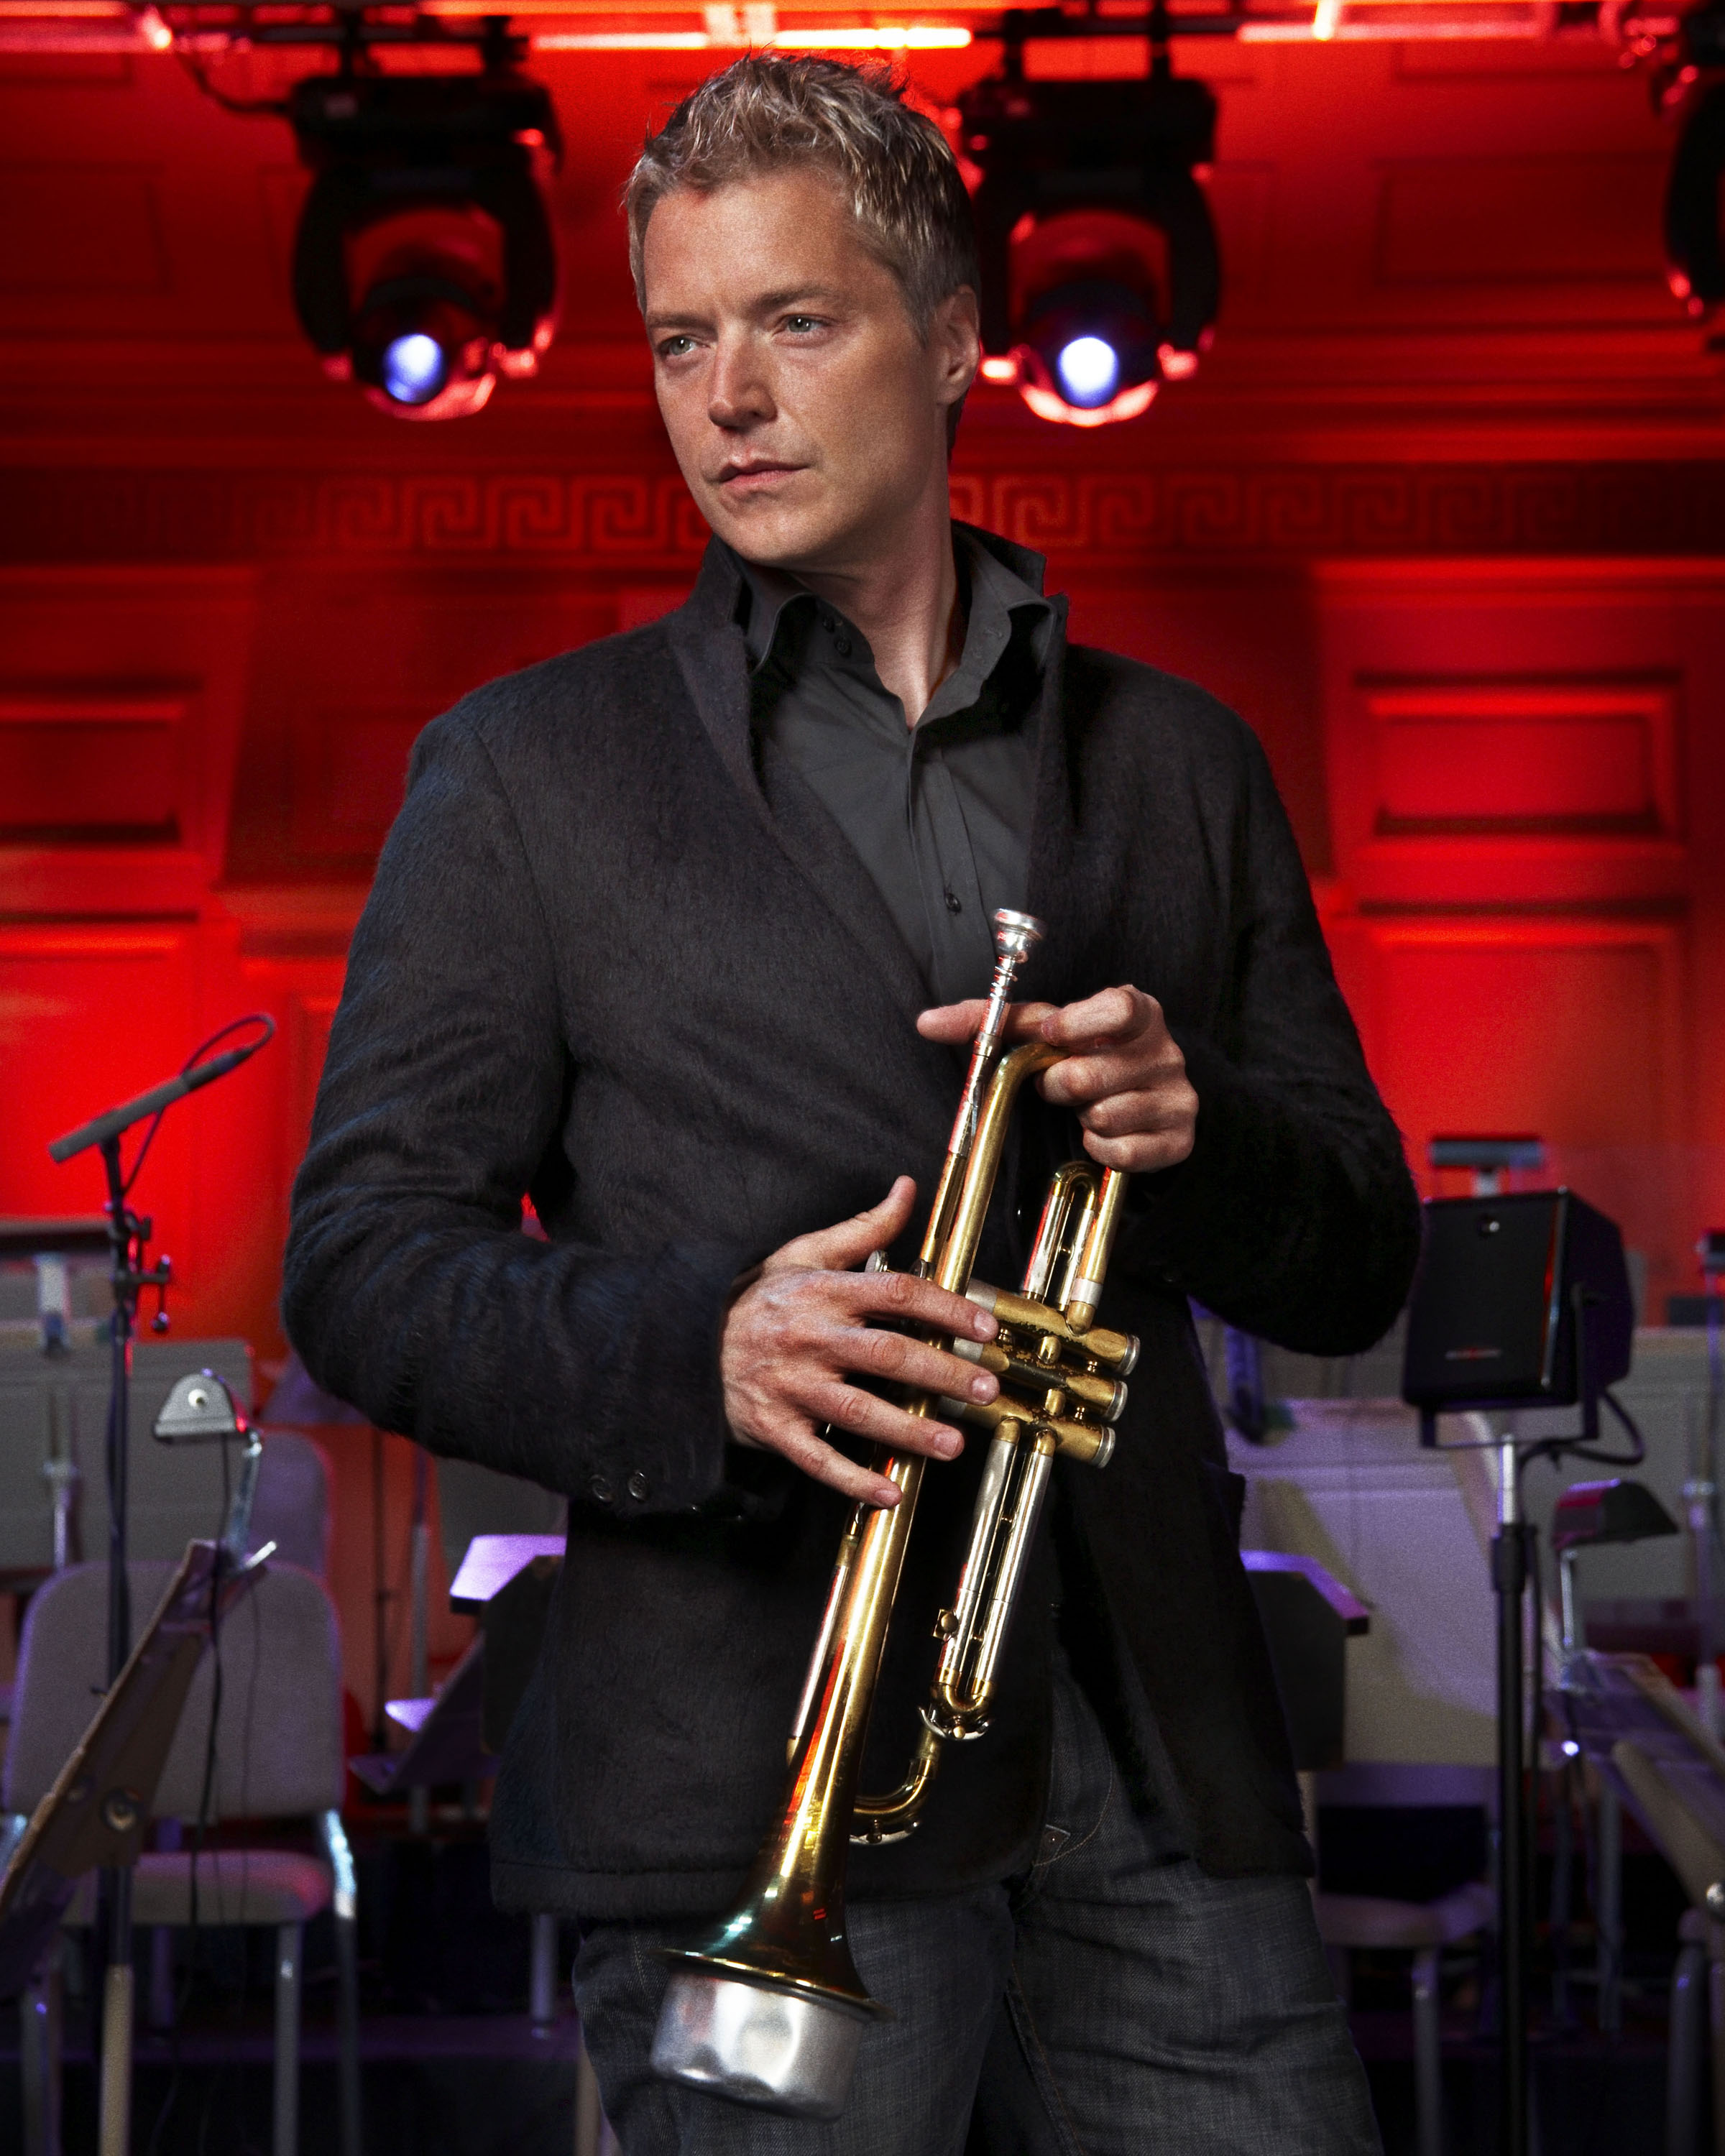 An Evening with Chris Botti and Band